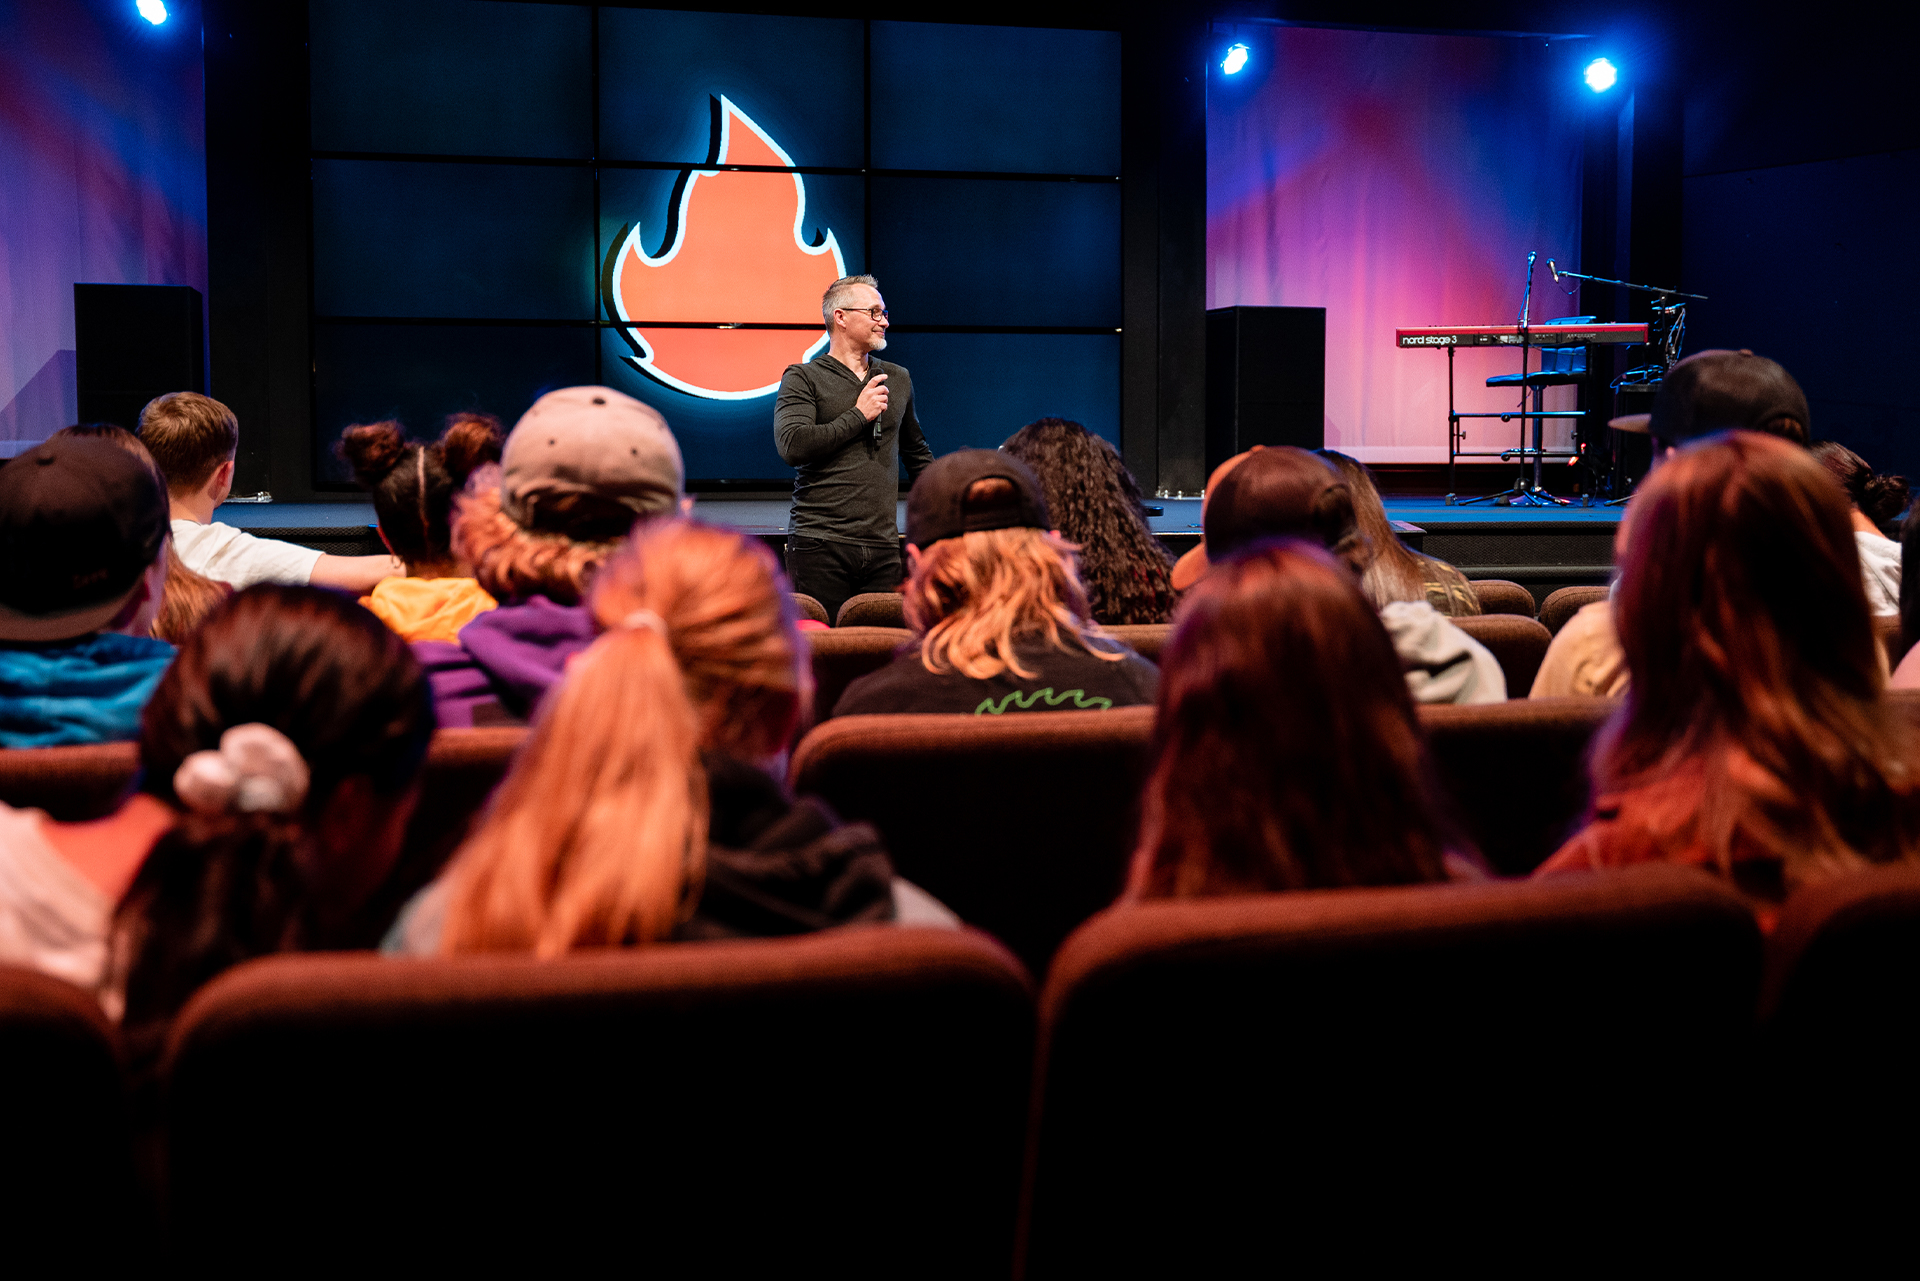 We do a lot at Expereince Church.tv Youth Puyallup, a Christian church